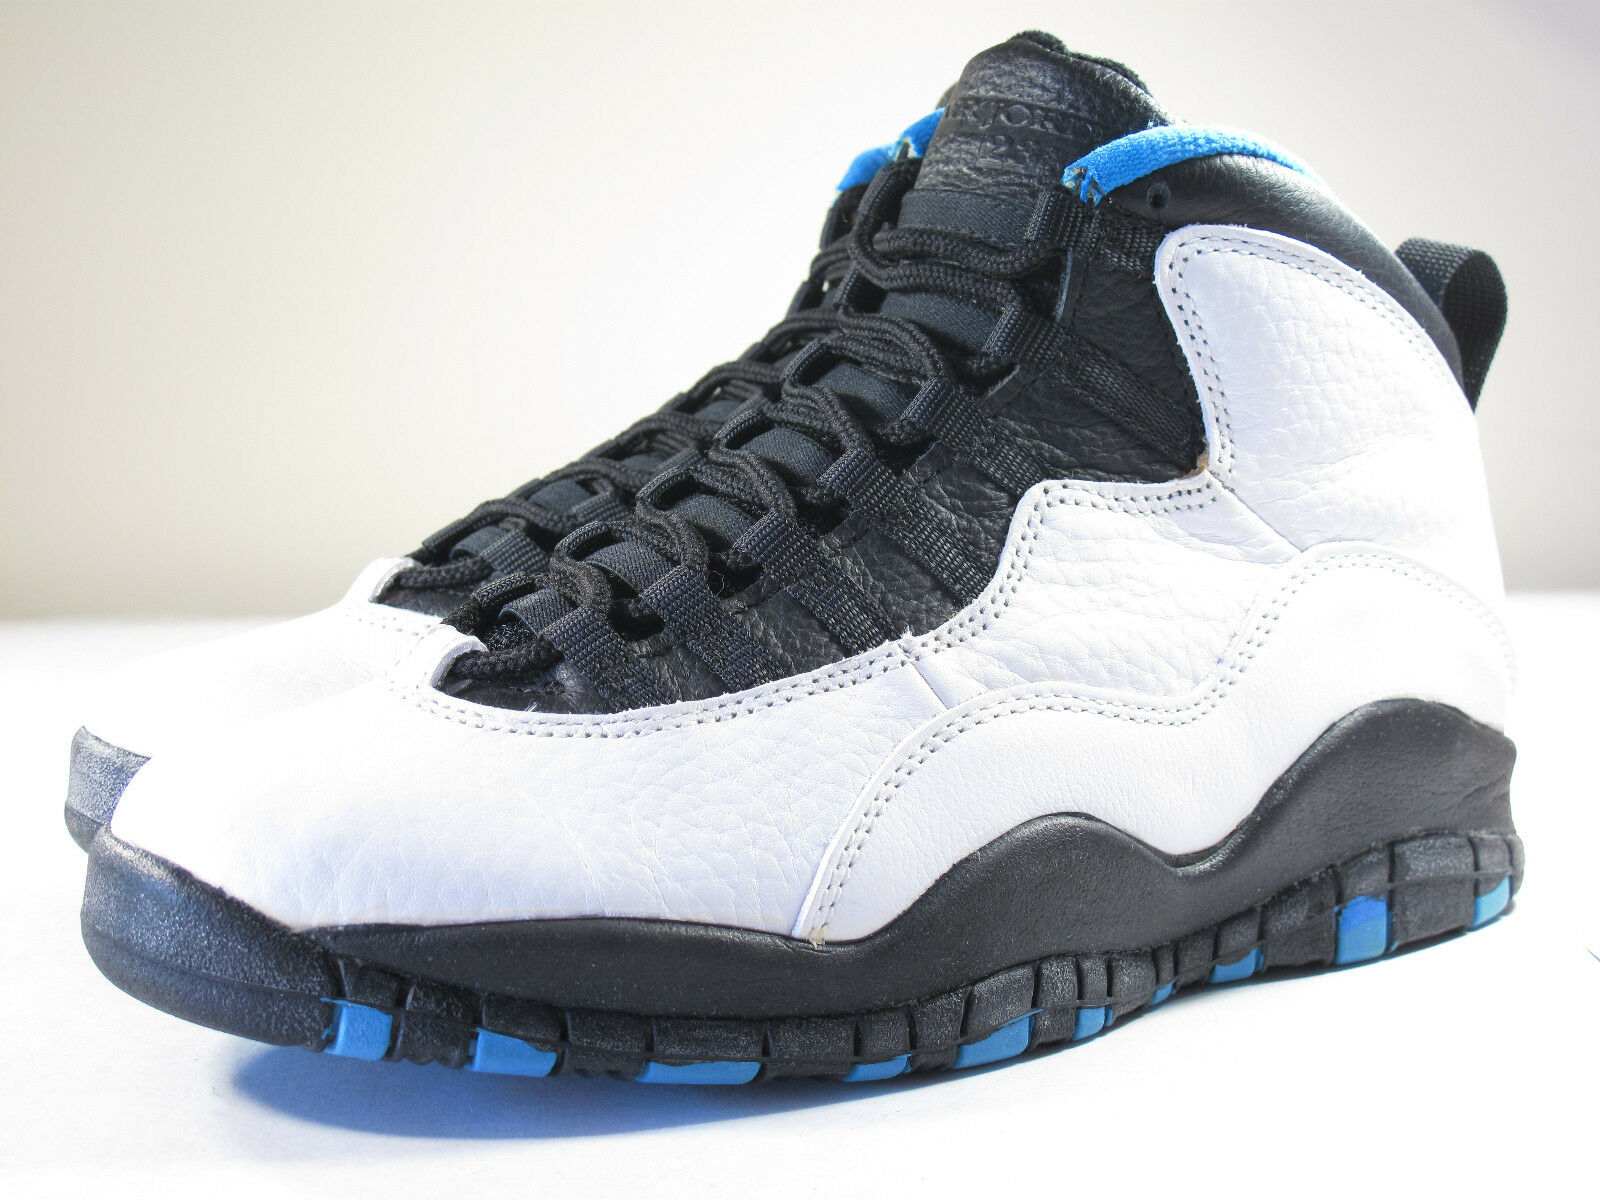 DS NIKE 1994 AIR JORDAN X OG POWDER BLUE 7.5 VINTAGE FUTURE TEAM CHICAGO SEATTLE The most popular shoes for men and women